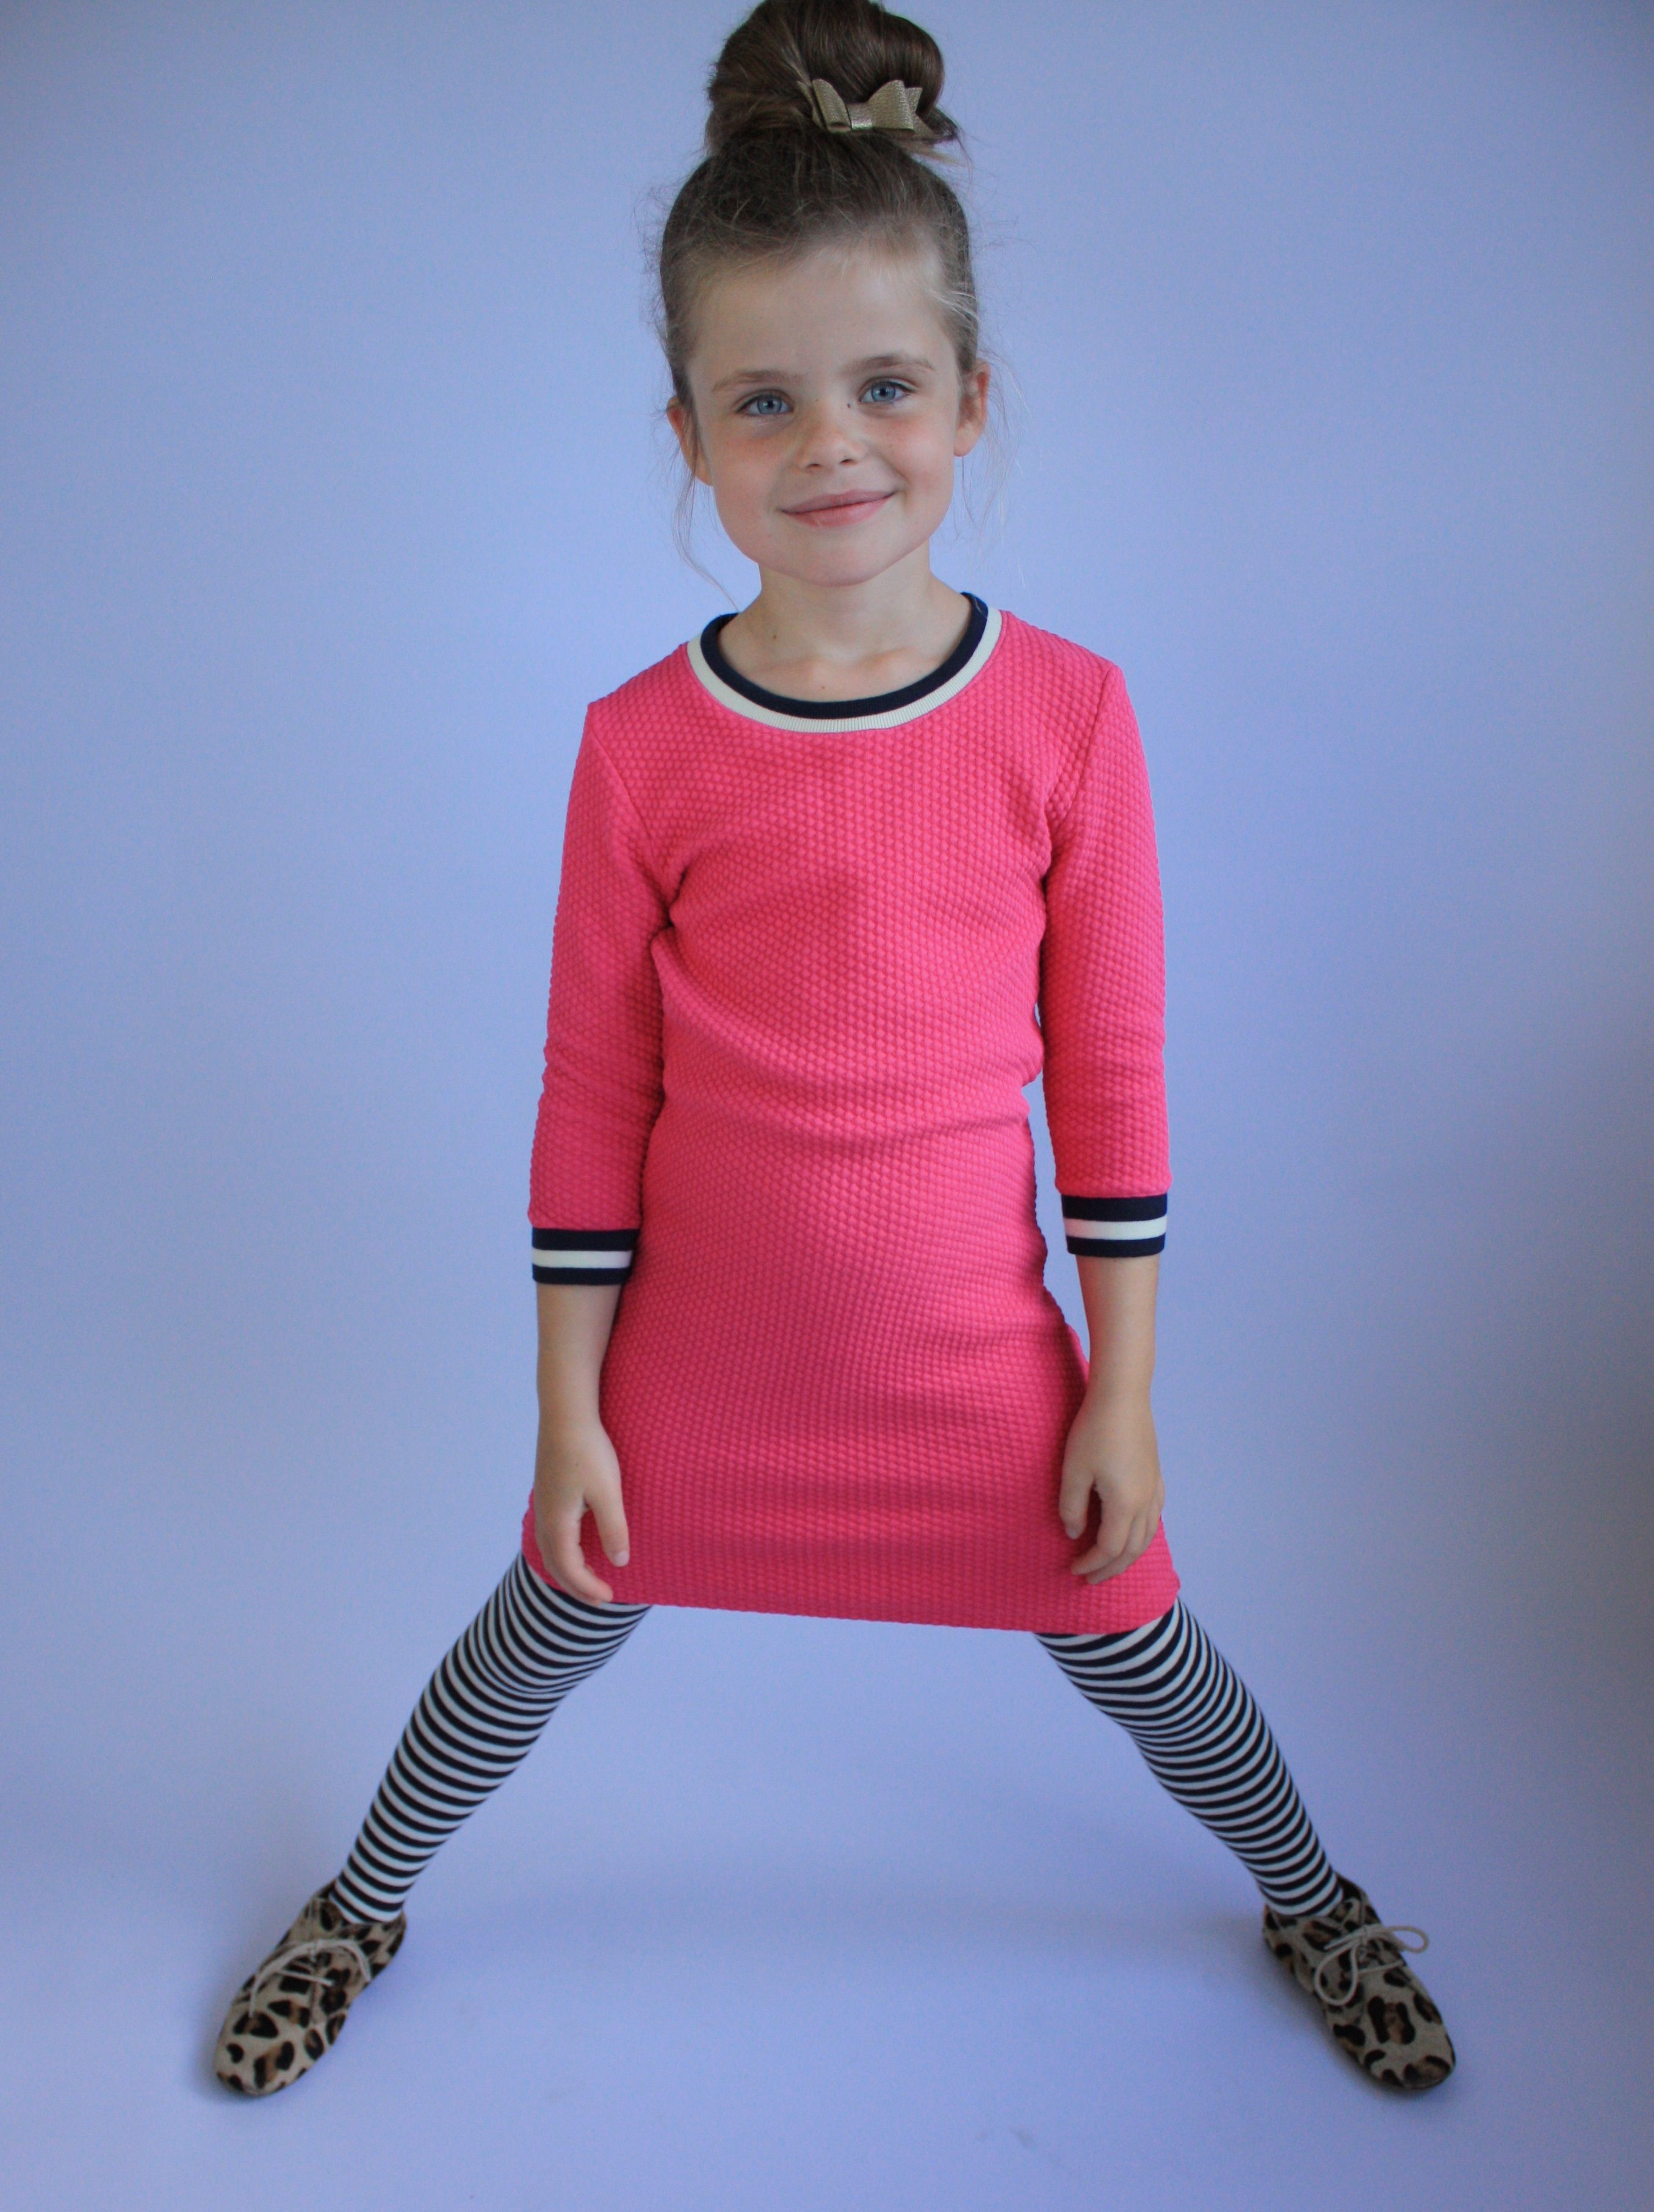 Pink is still her favorite color. Wearing a pink dress from the Dutch brand Br@nd for girls and Maruti leopard shoes.